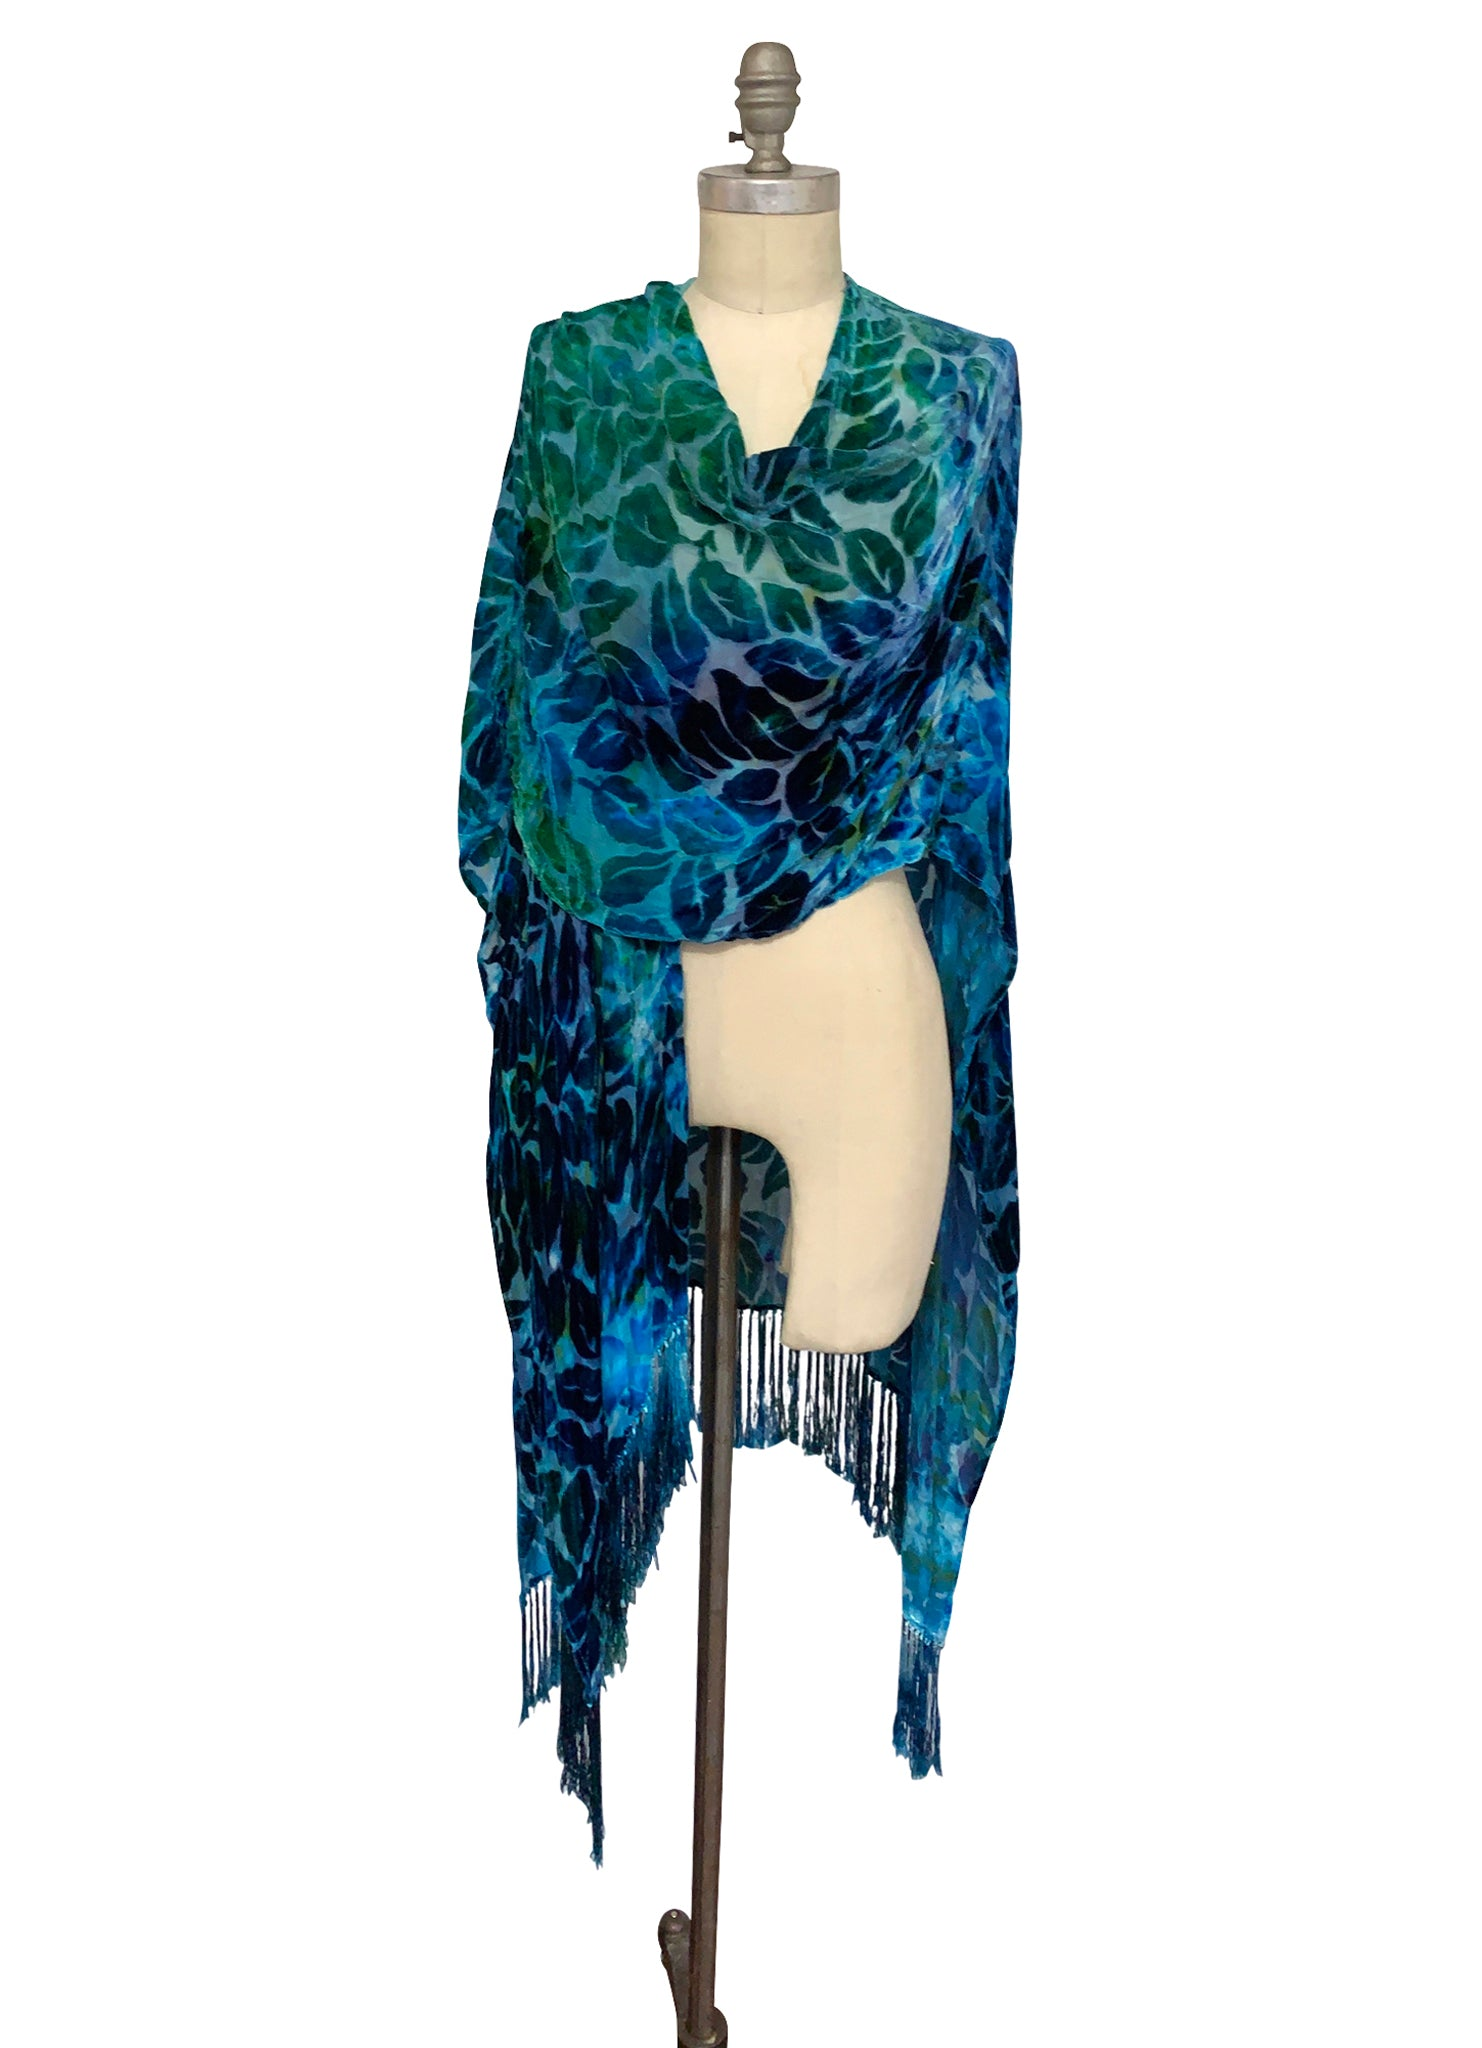 Velvet Burn-Out Fringe Shawl in Turquoise - Velvet Burnout Fringe Shawls - Dyetology